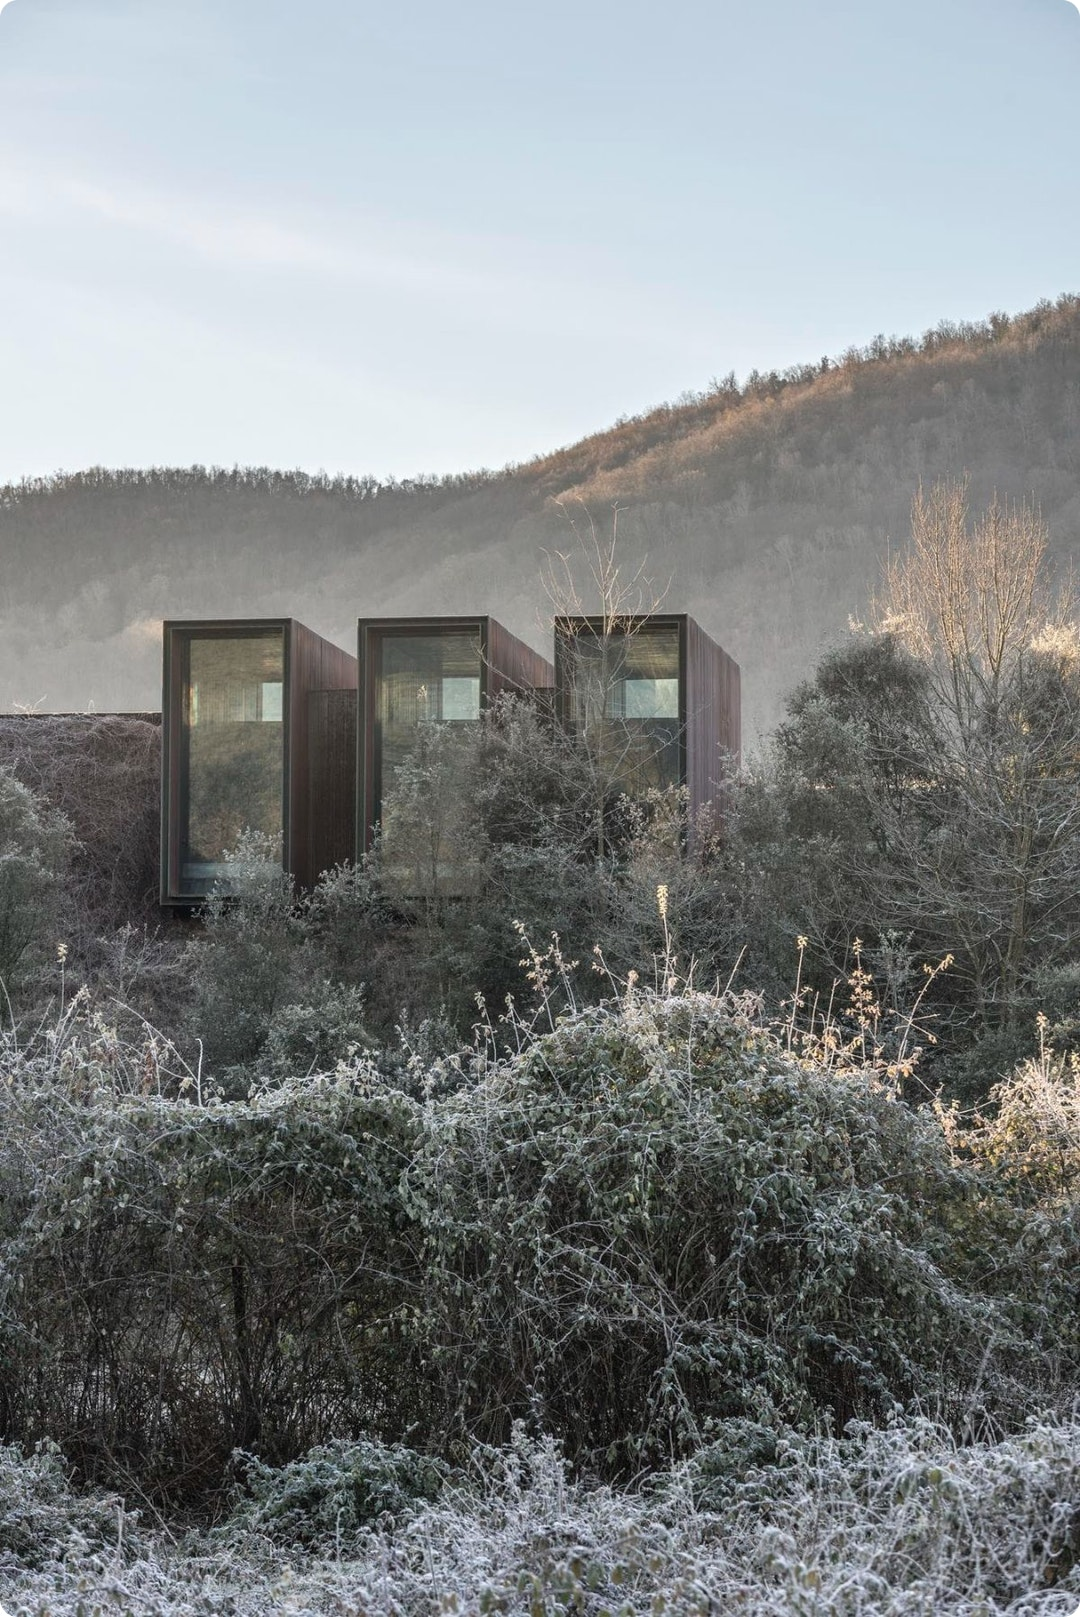 Horizon House by RCR Arquitectes